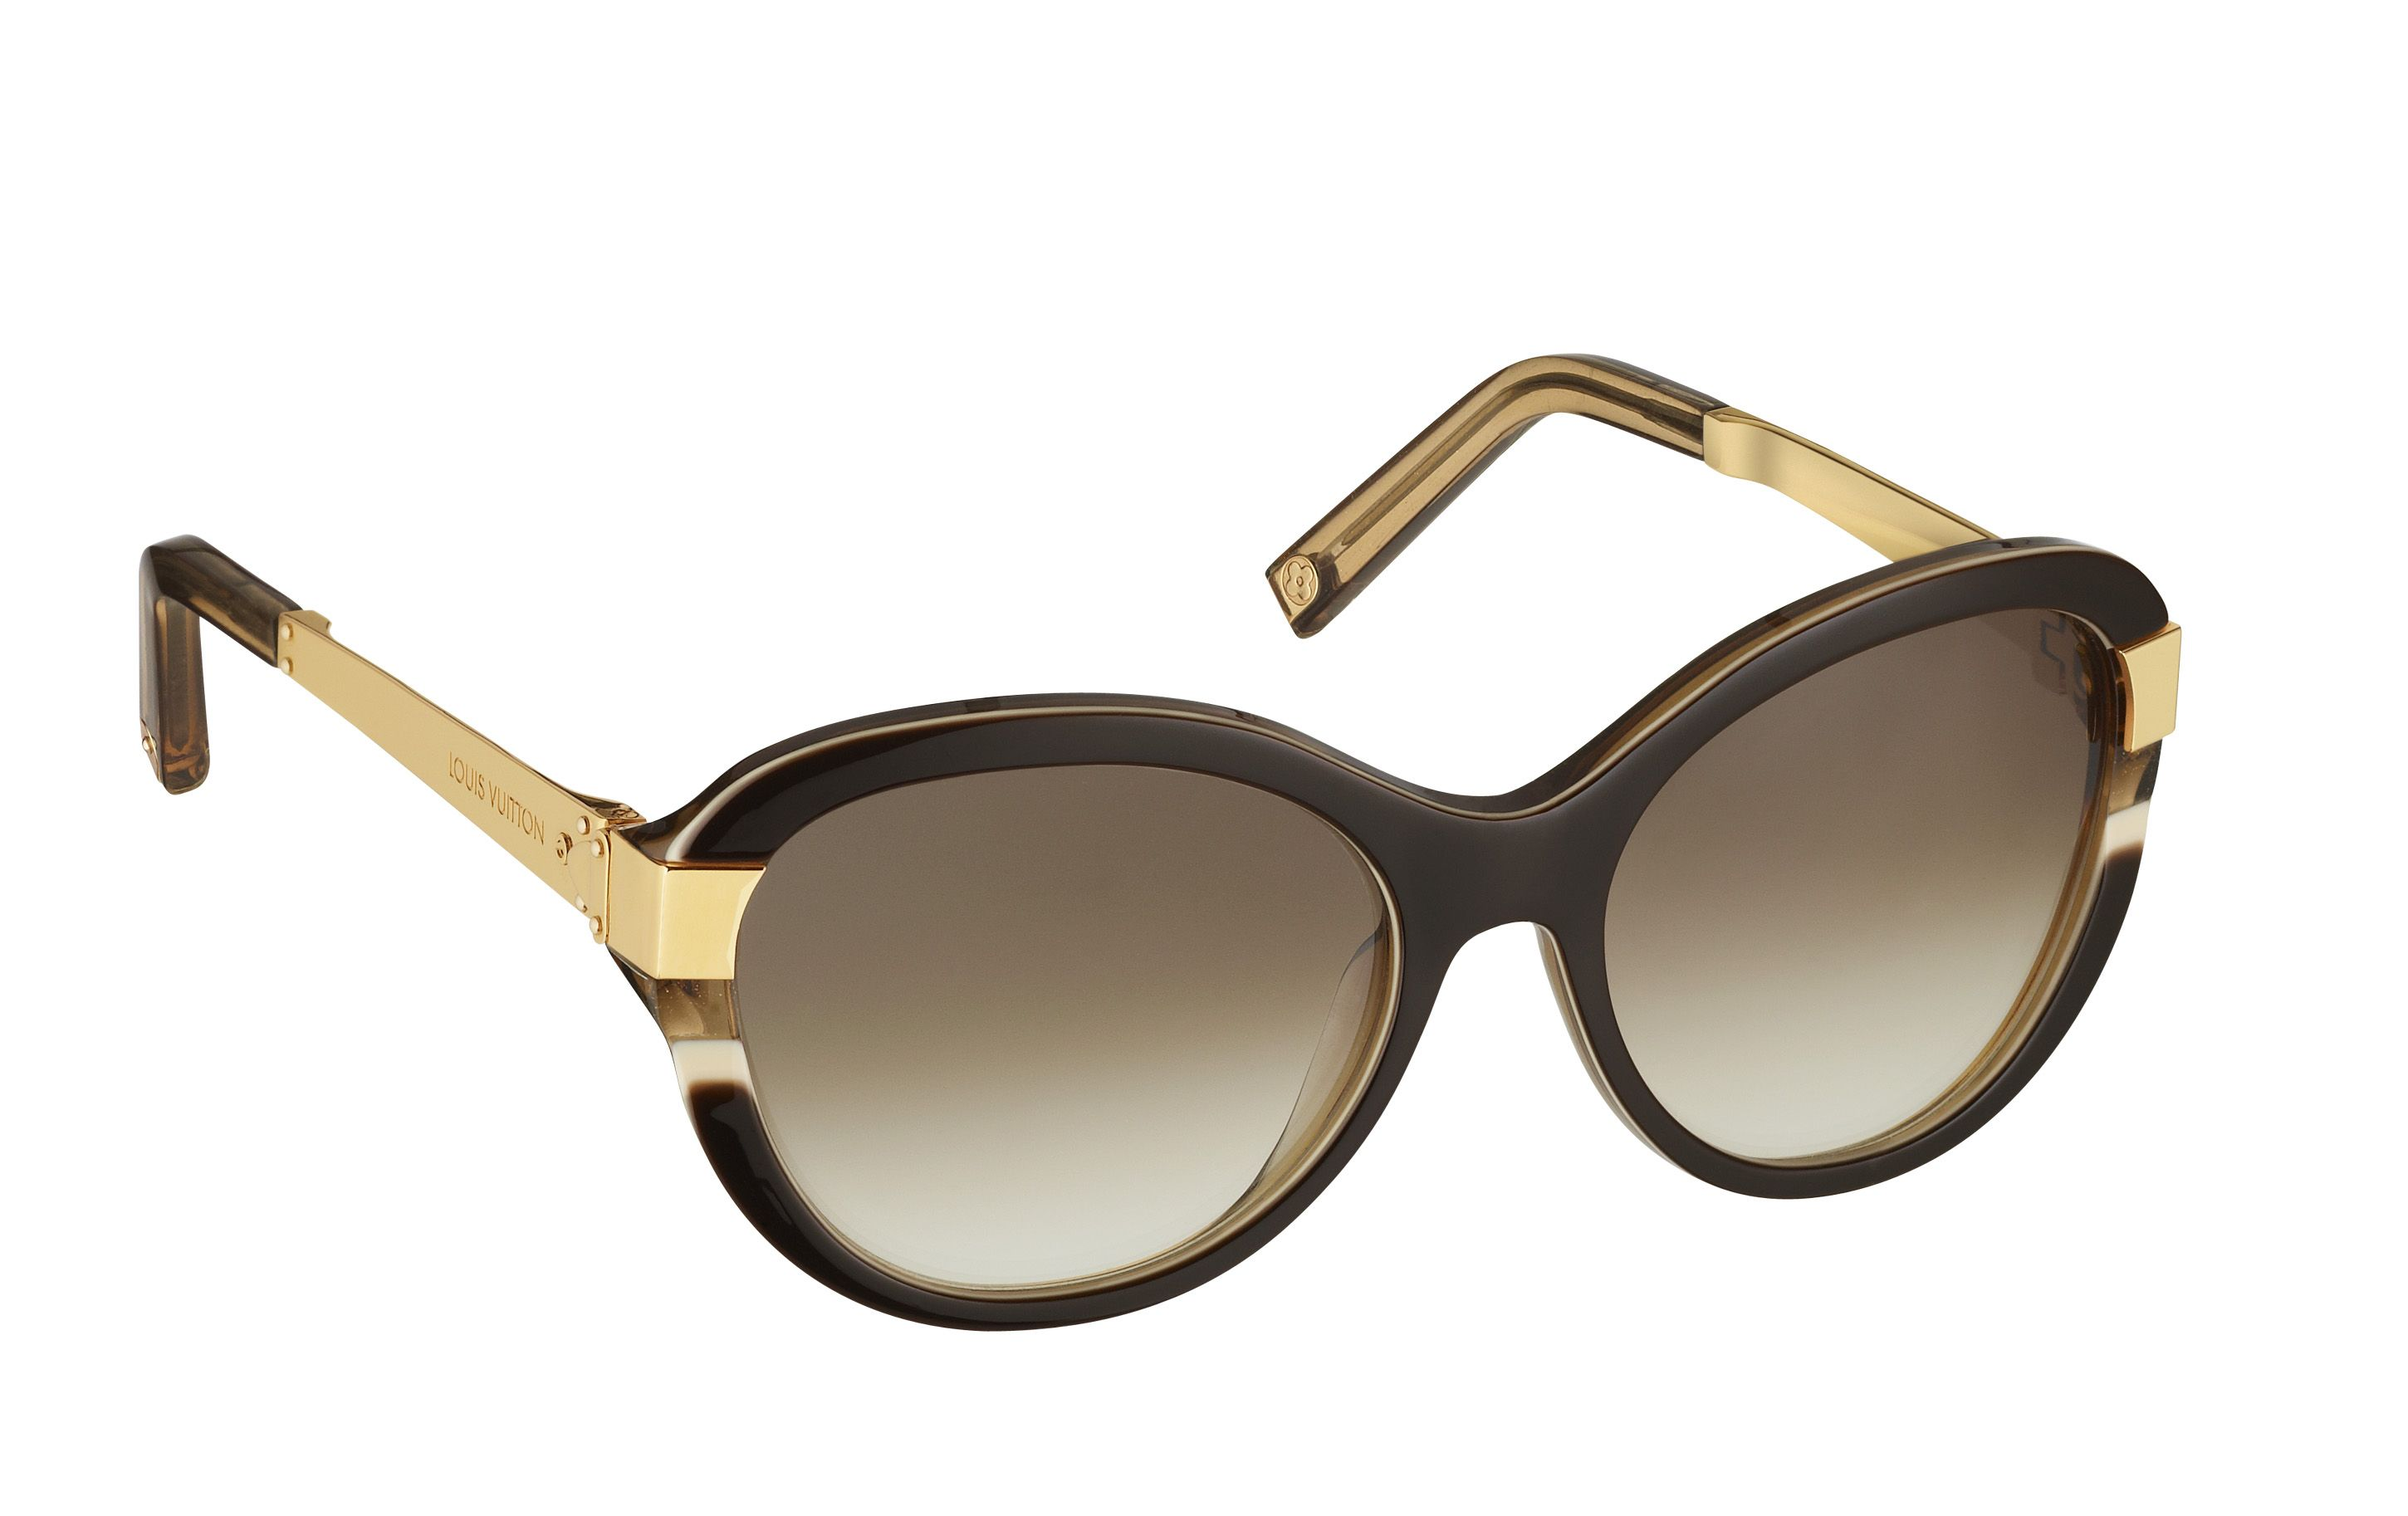 42228963e012d With its retro cat-eye shaped frame made of Louis Vuitton-exclusive three  layers acetate